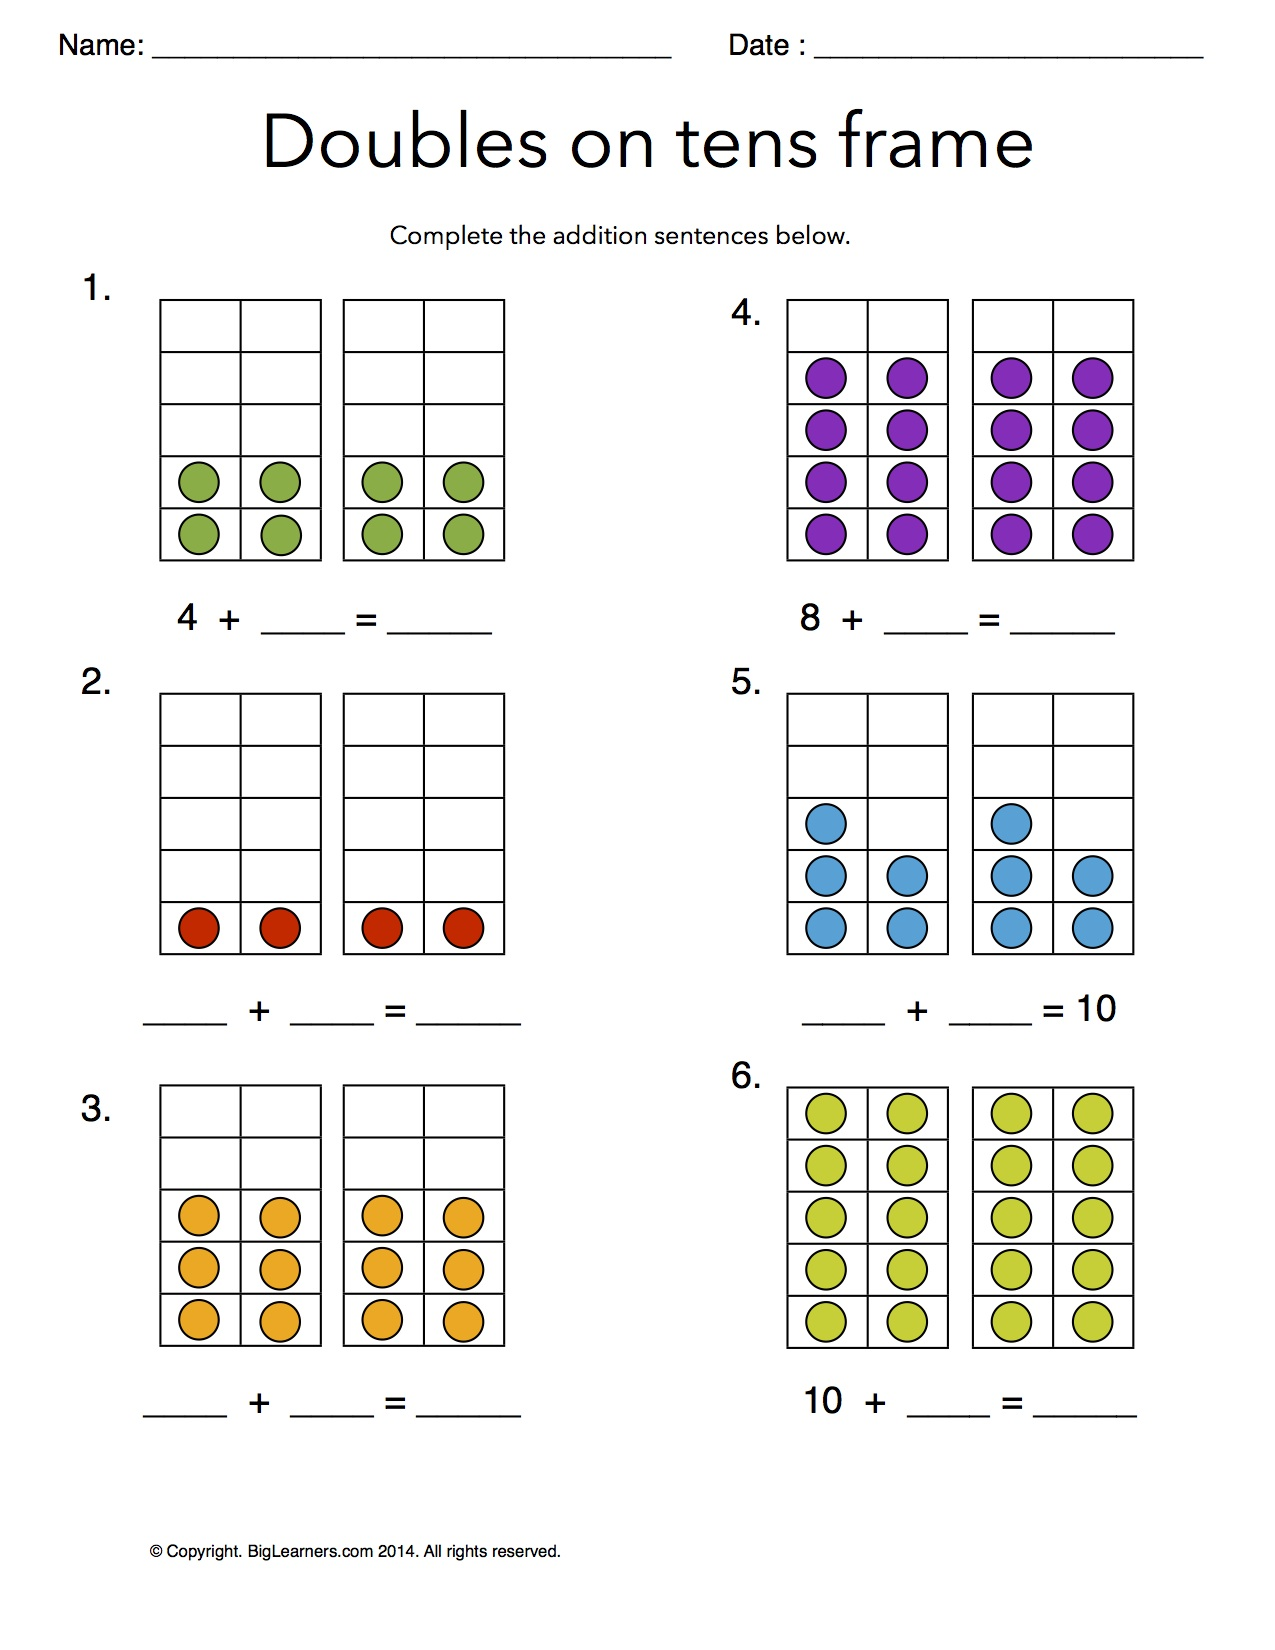 Worksheets Making Ten Worksheets grade 1 free common core math worksheets biglearners preview image for worksheet with title doubles on tens frames